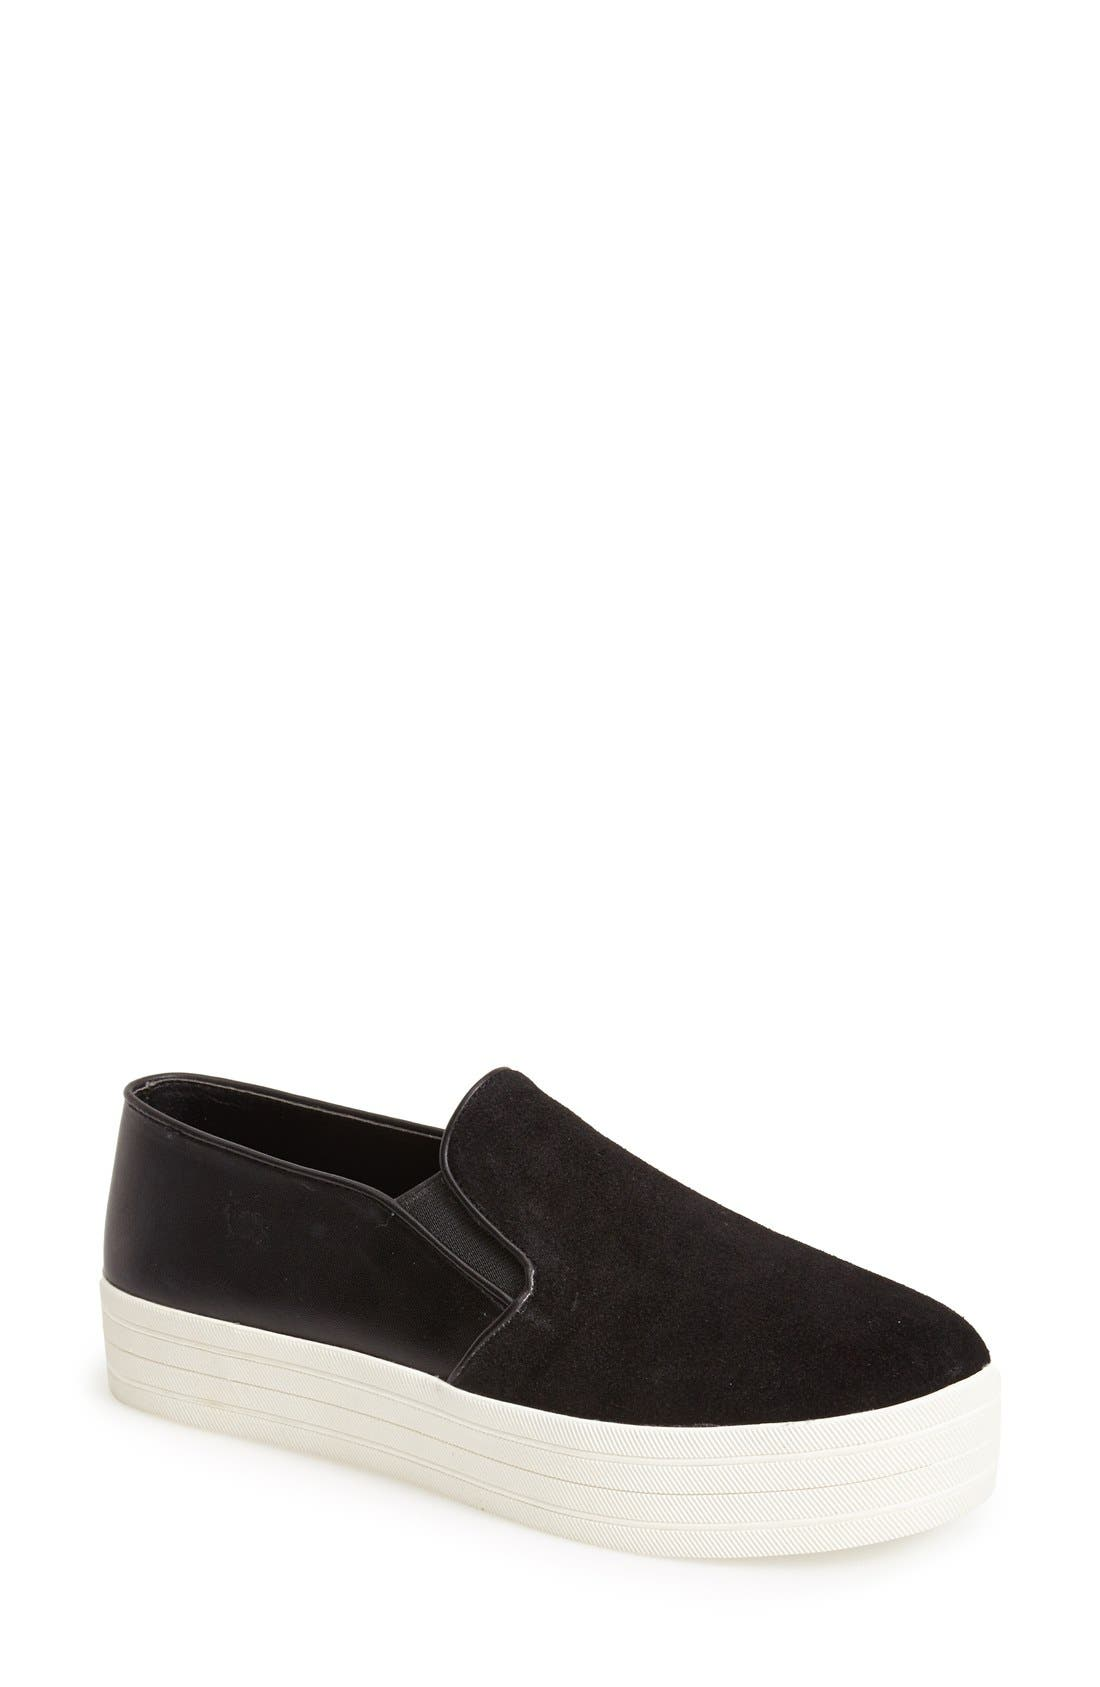 'Buhba' Slip-On Sneaker,                             Main thumbnail 1, color,                             Black Suede